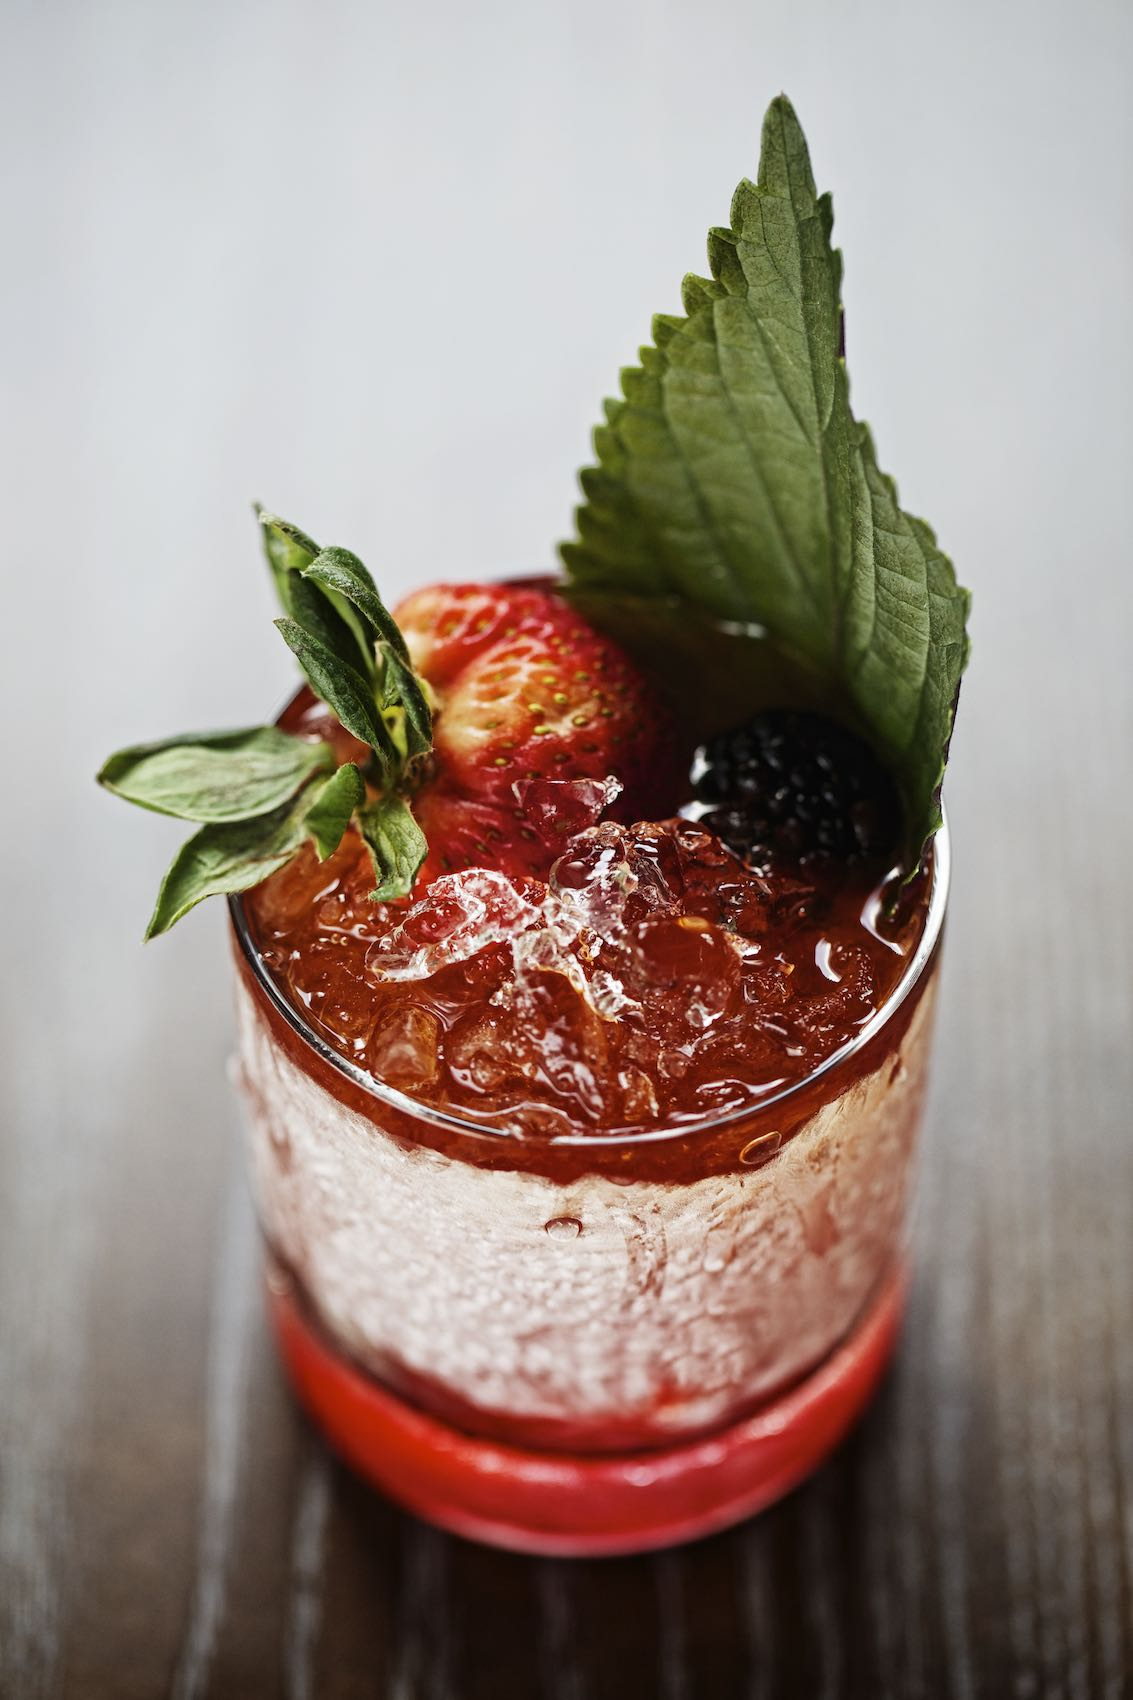 Jody Horton Photography - Frosty cocktail with berry and mint garnish.